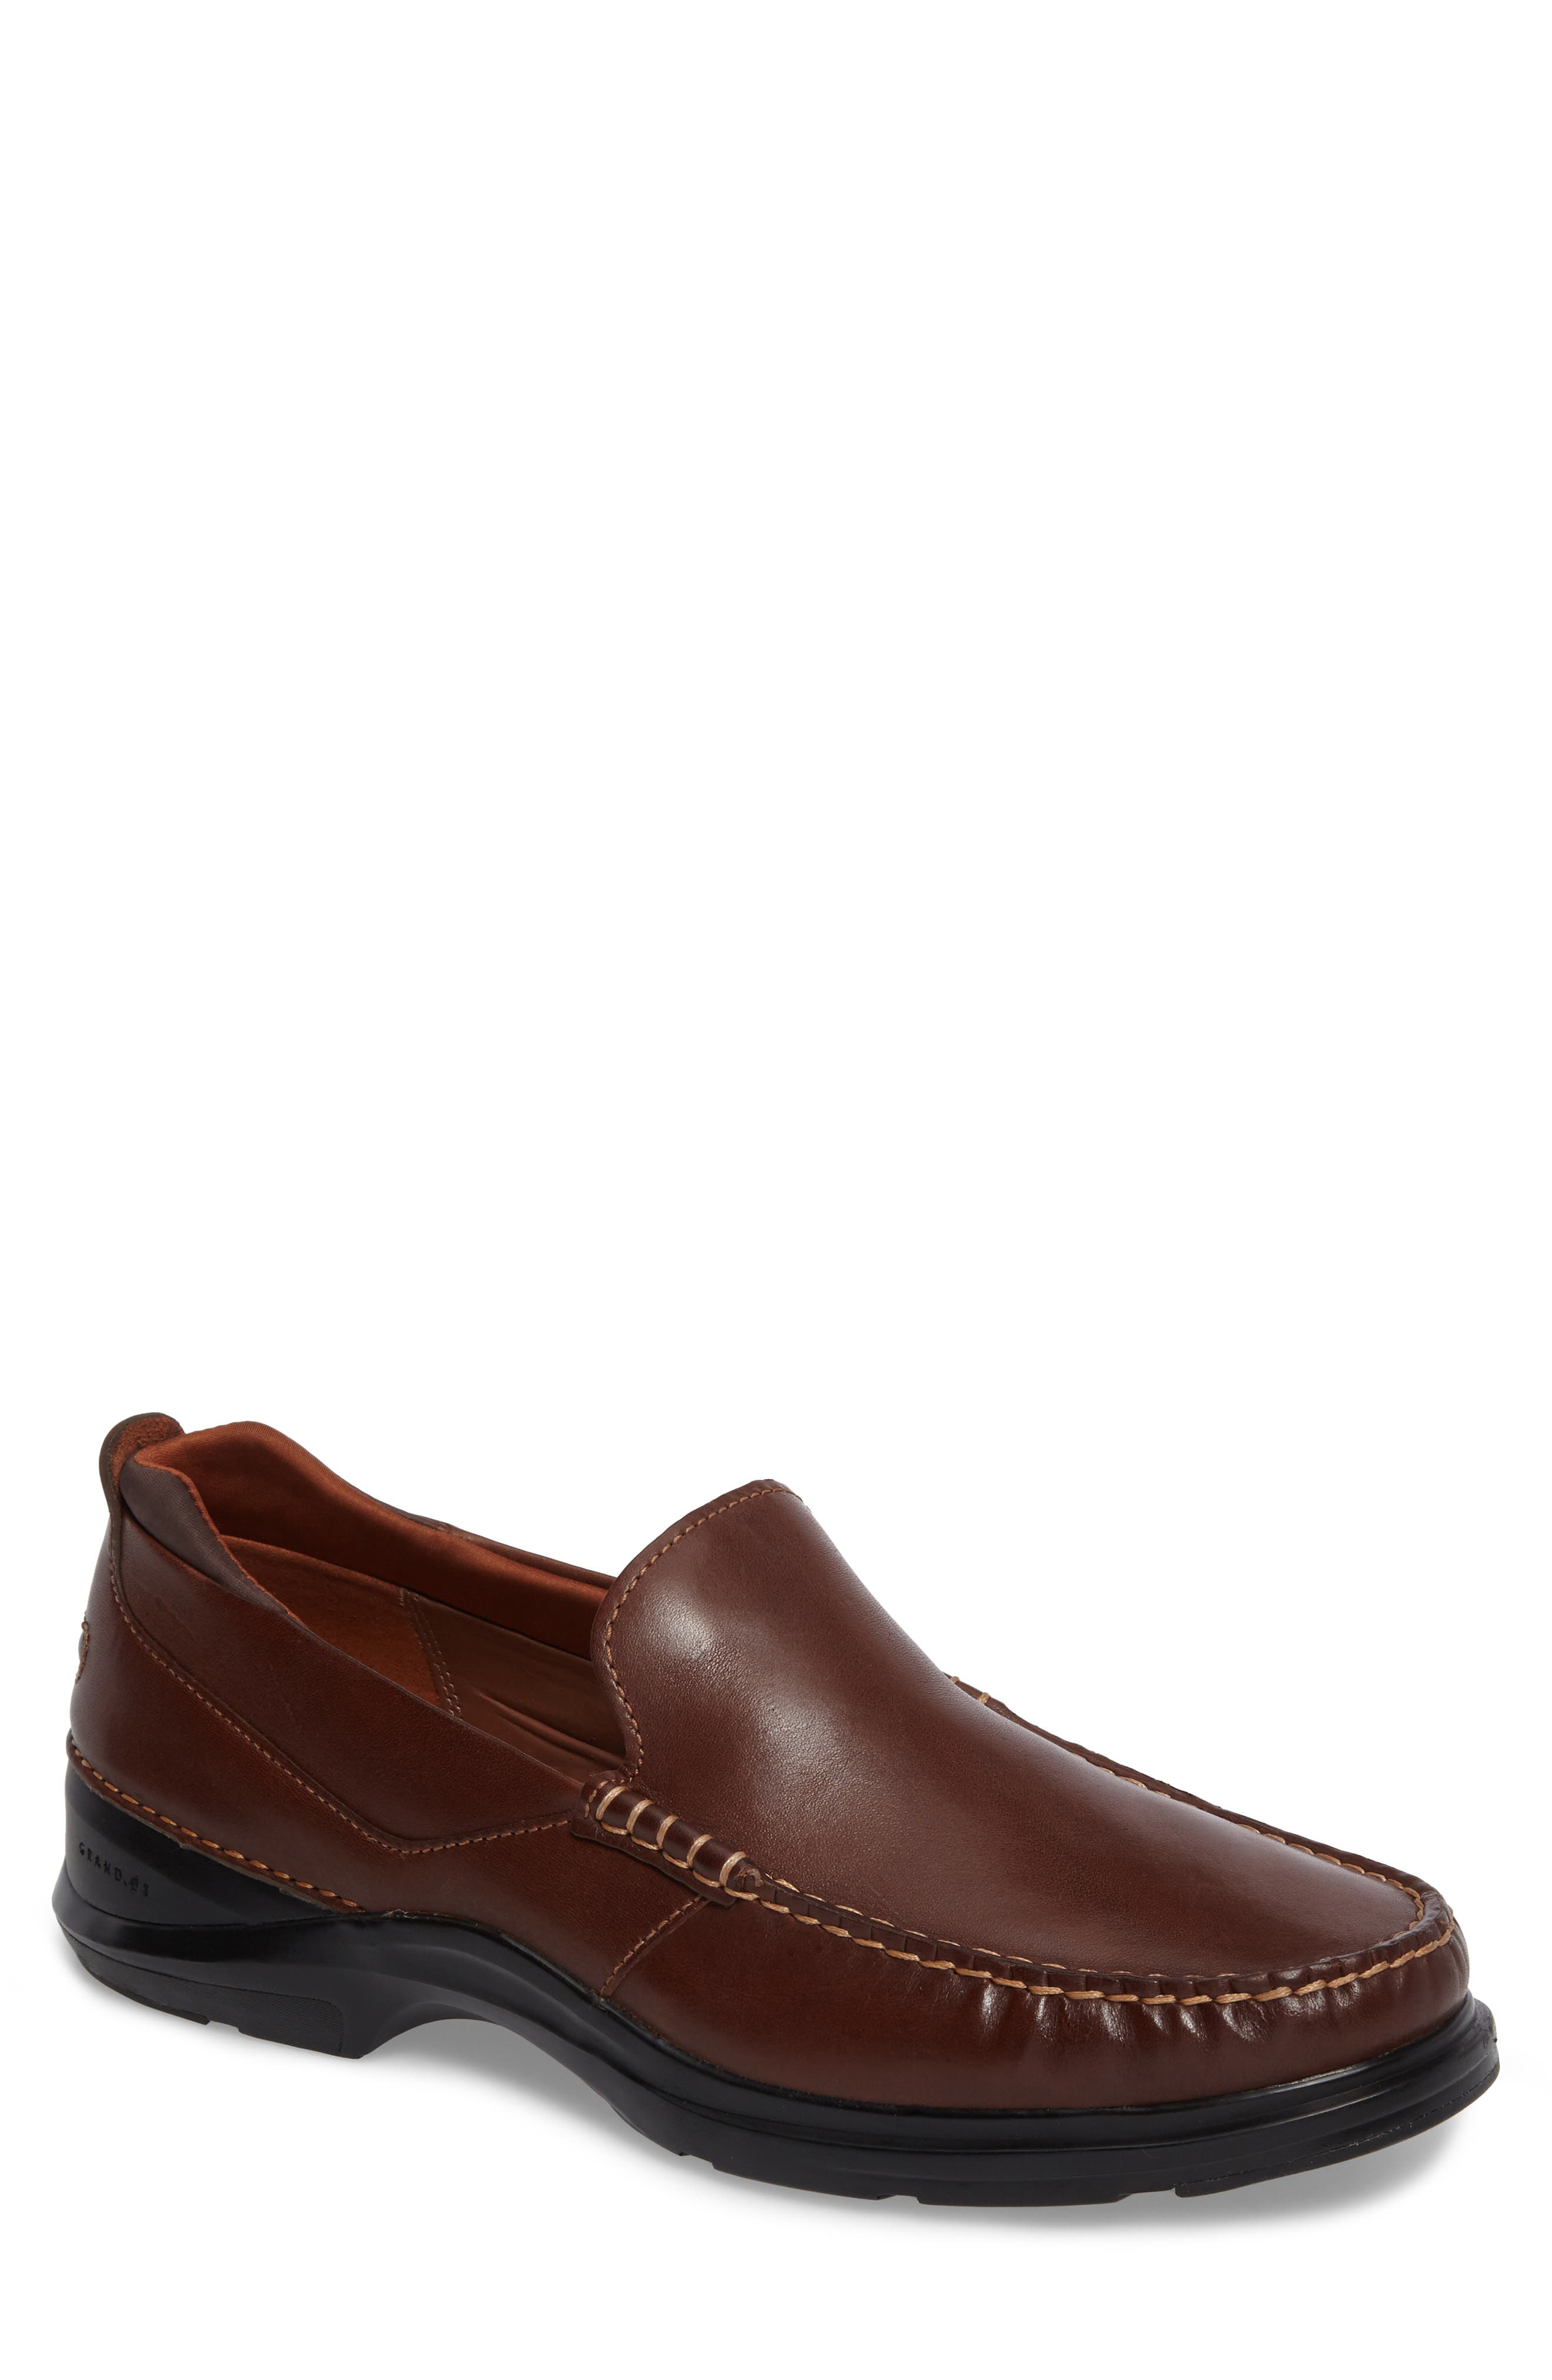 Bancroft Loafer,                             Main thumbnail 1, color,                             Harvest Brown Leather